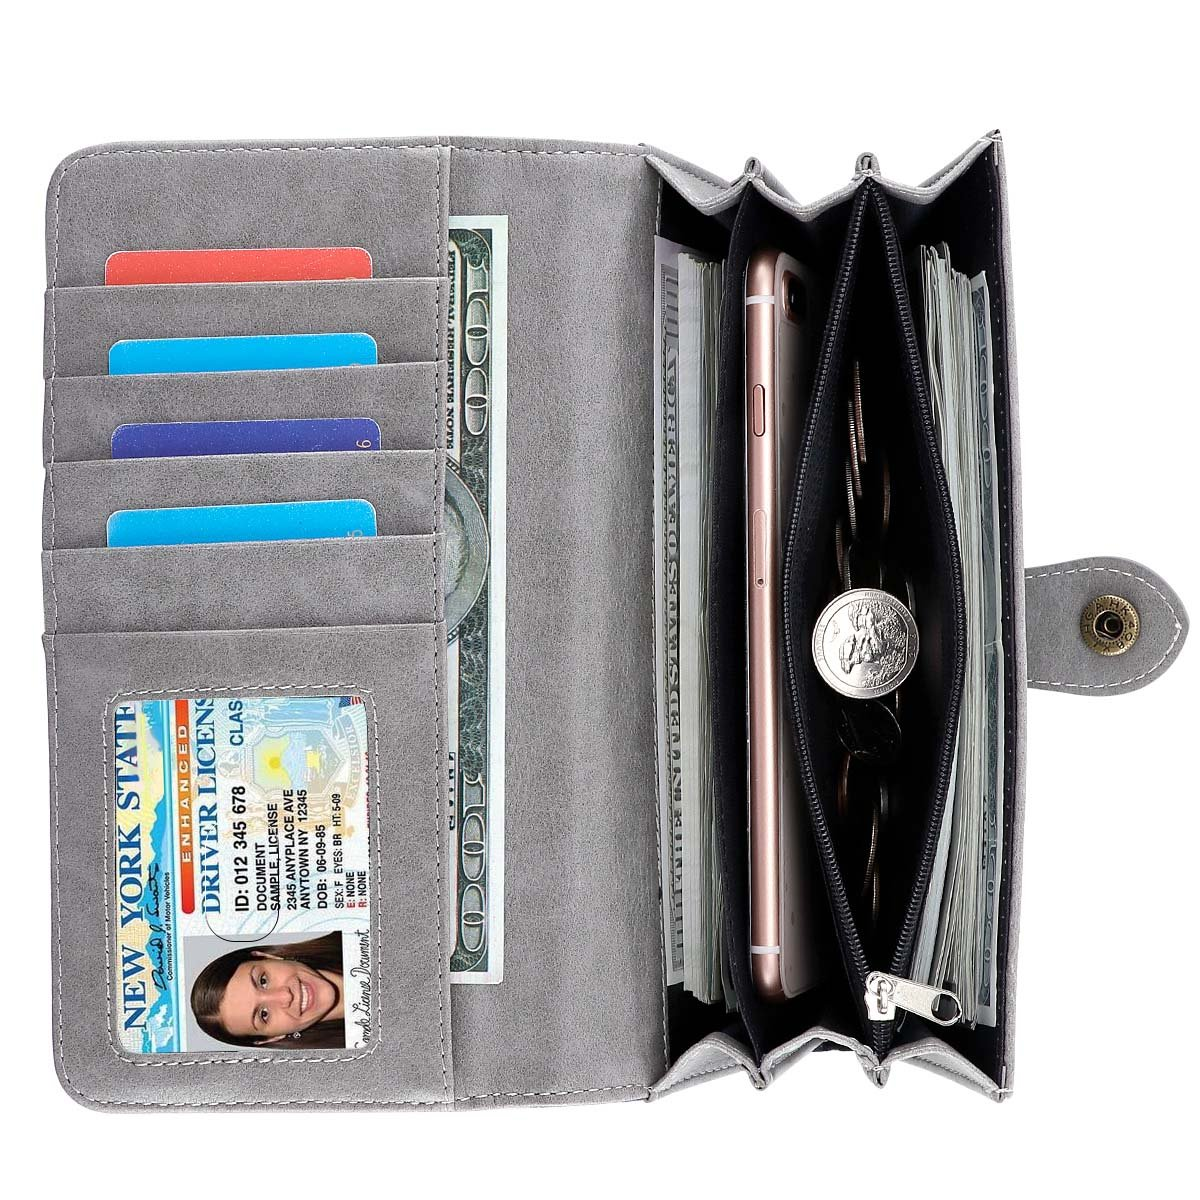 Women Wallet Large Capacity Clutch Wallet Holder Purse with ID Window and Inner Zipper Pocket (Grey) by SMITHSURSEE BAG (Image #2)